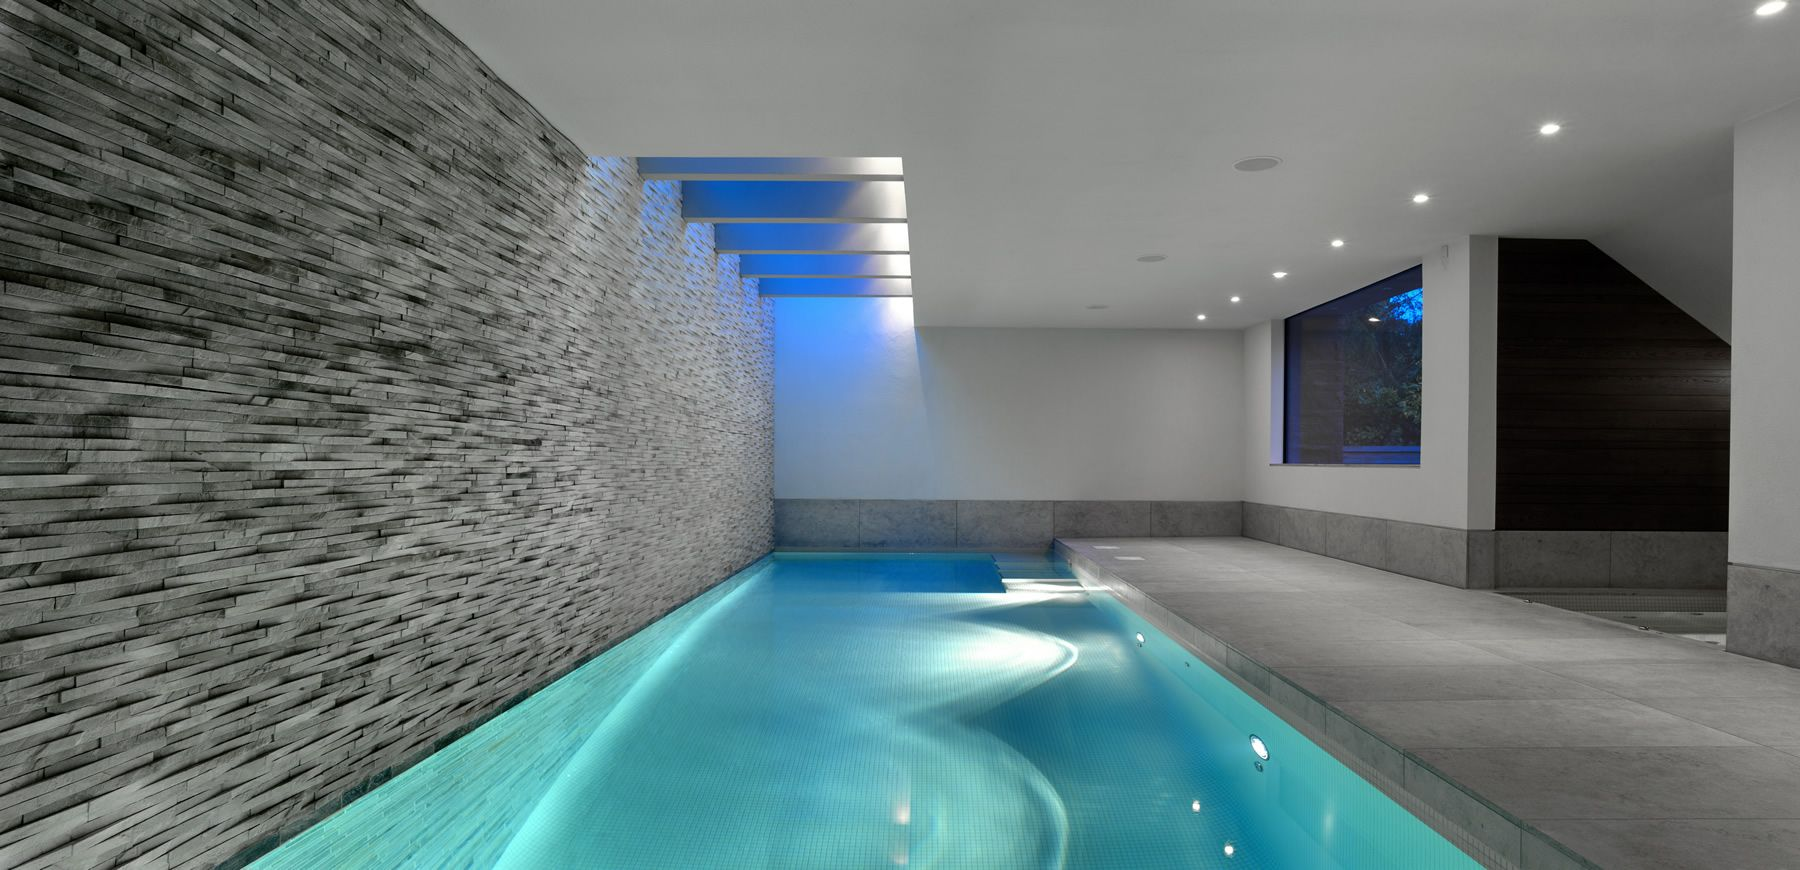 Light In The Ceiling Indoor Swimming Pools Indoor Swimming Pool Design Small Indoor Pool